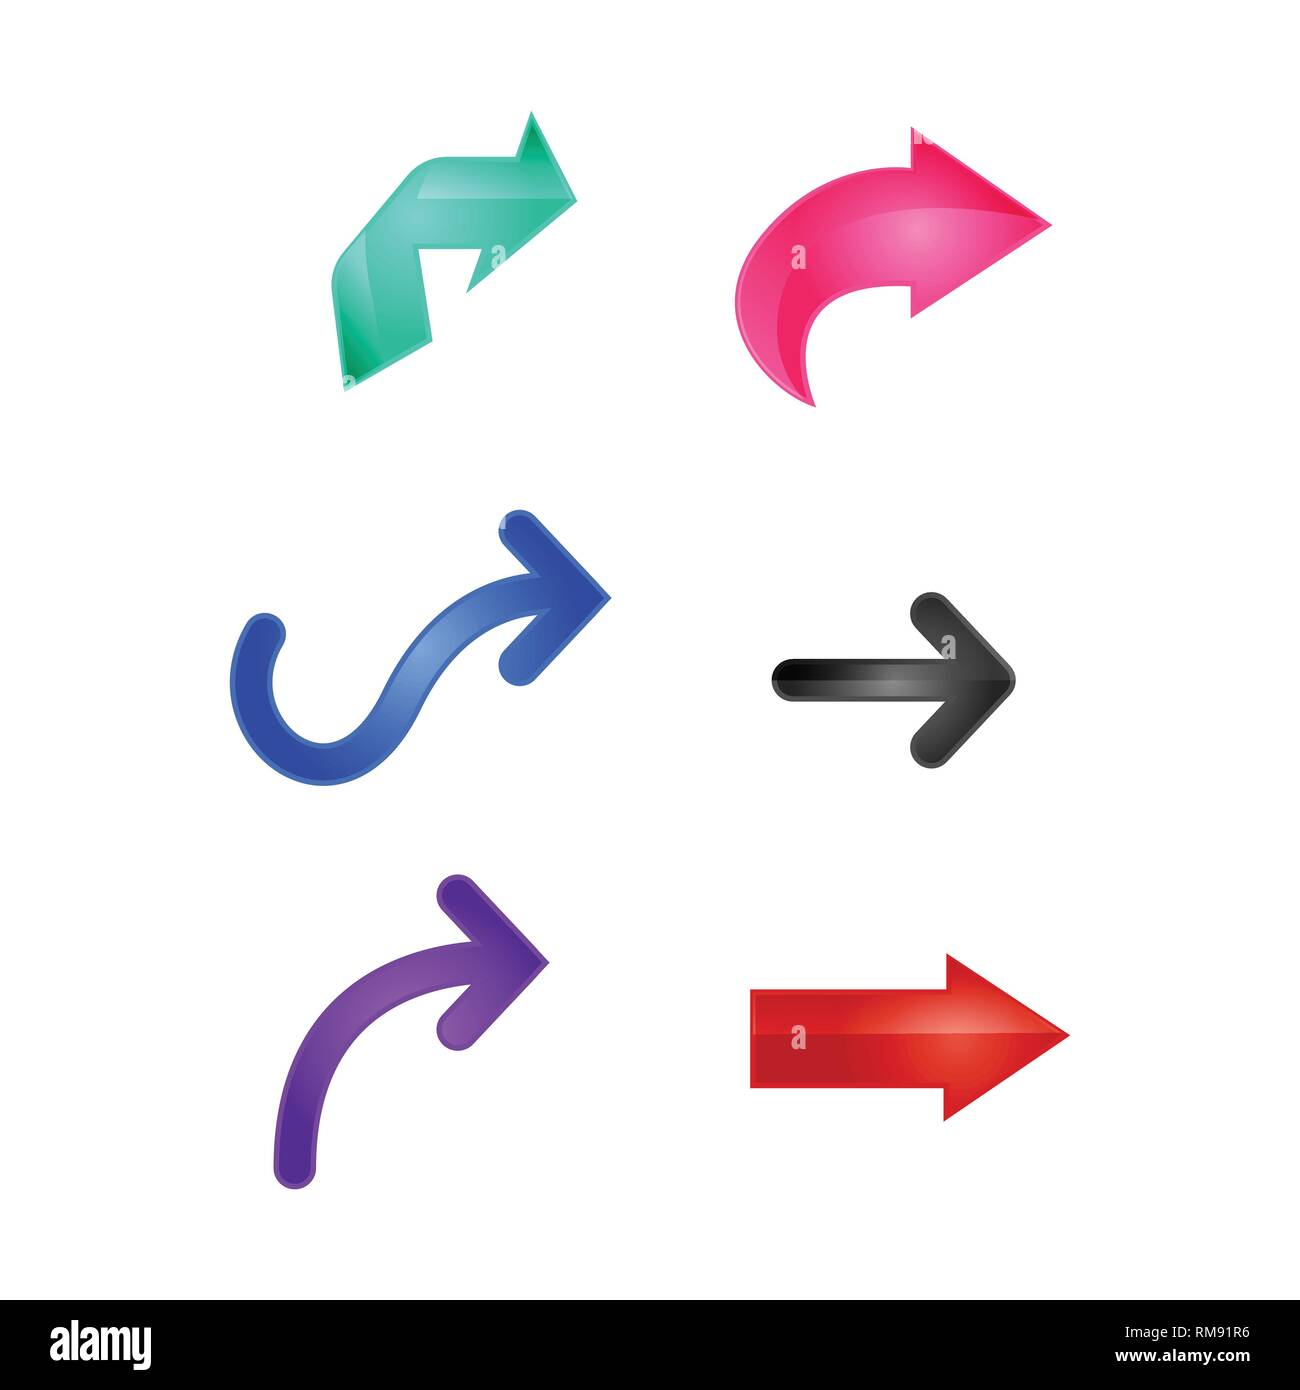 Arrows  Set of colored shiny icons  3d vector illustration